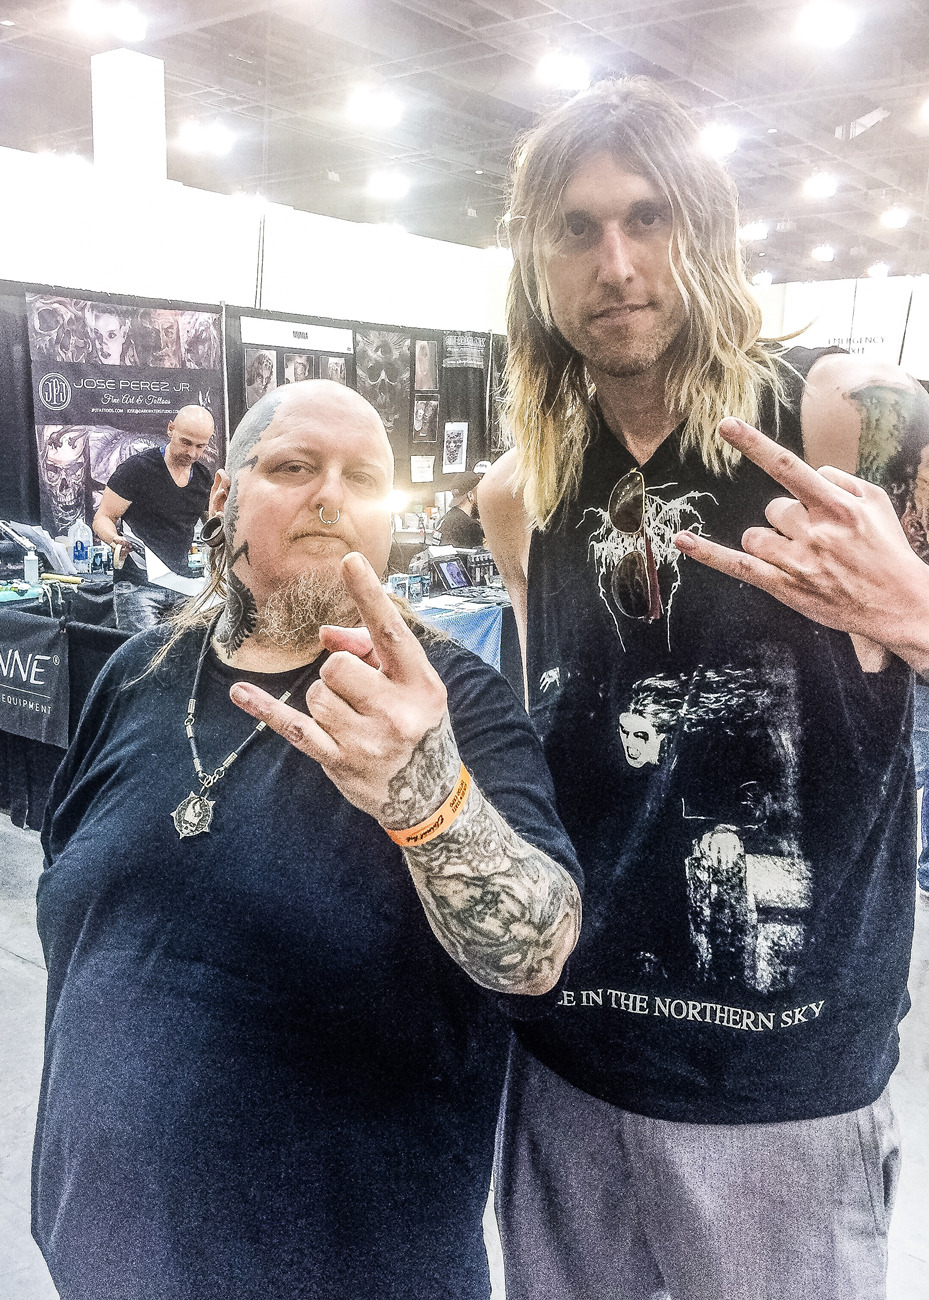 bryanbarnesart :      Master Tattoo Artist + NYC Last Rites Gallery Owner Paul Booth and Artist + Dark Fashion Photographer Bryan Barnes,  Golden State Tattoo Expo - Pasadena, CA January 2016        Much thanks to I nked Magazine  for hosting the 2016 GOLDEN STATE TATTOO EXPO in Pasadena, CA last weekend and for the kind photo repost of Paul Booth and I. GREAT times!